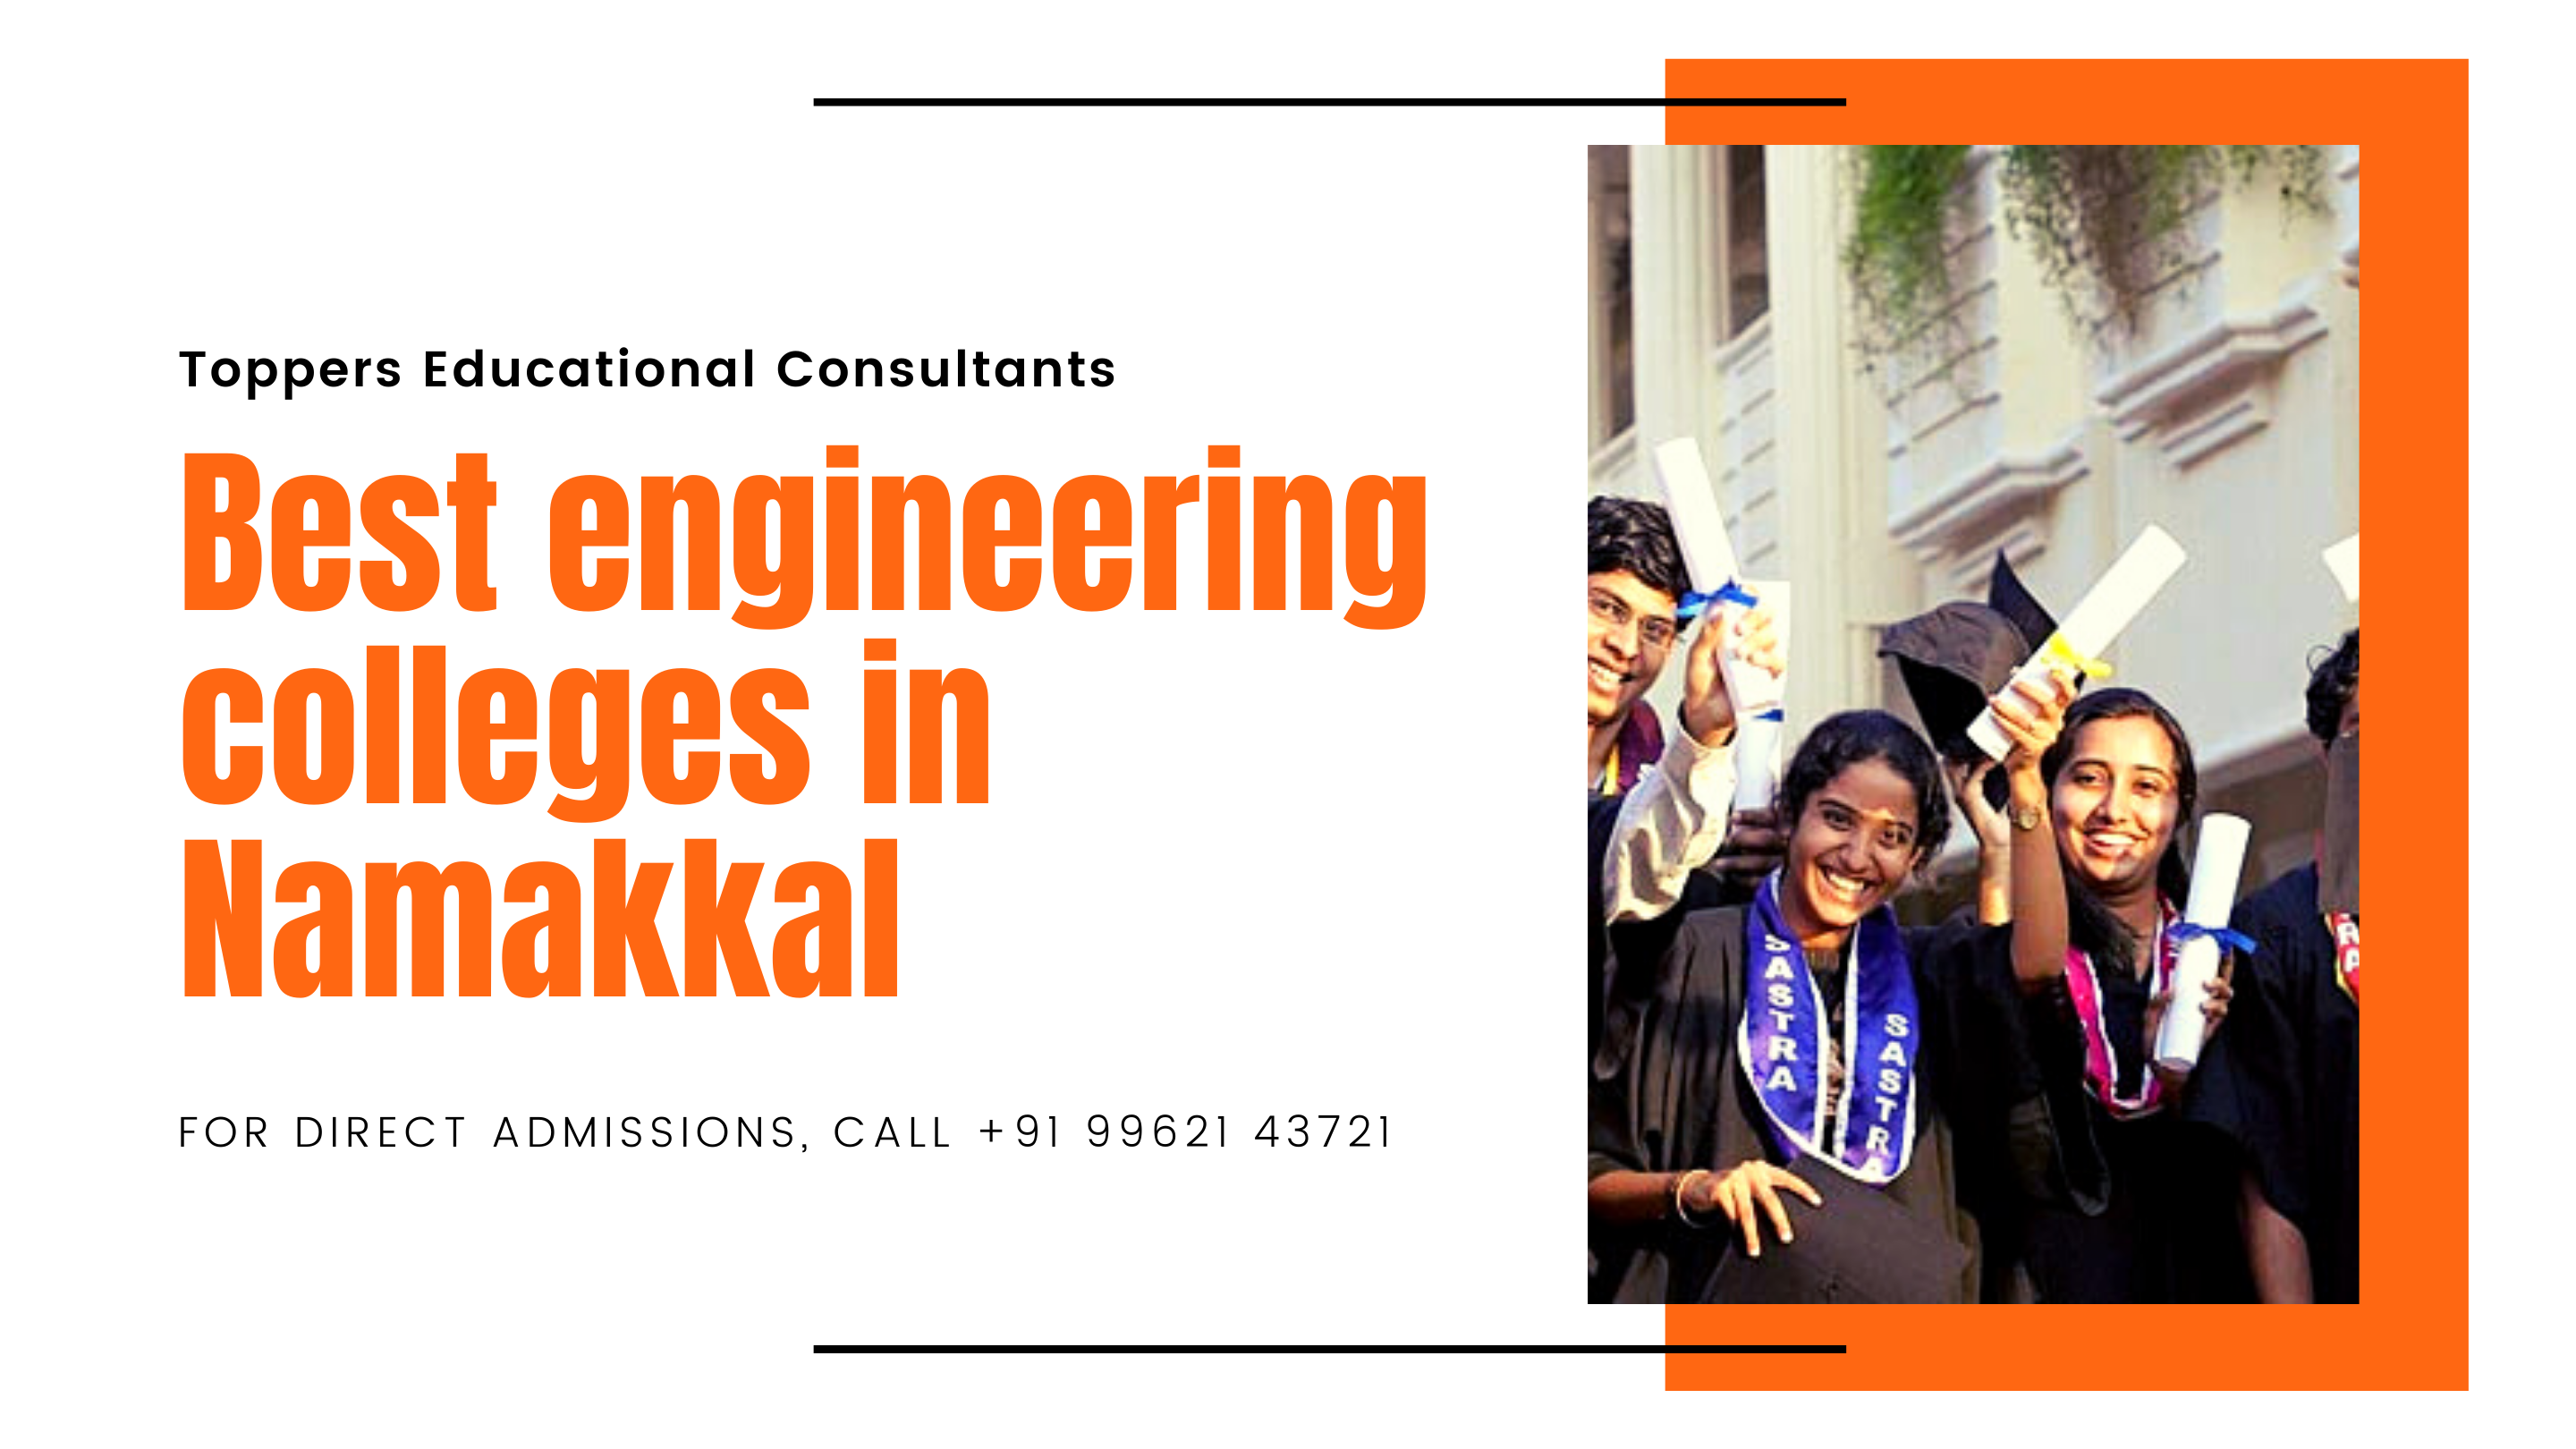 What are the best engineering colleges in Namakkal?